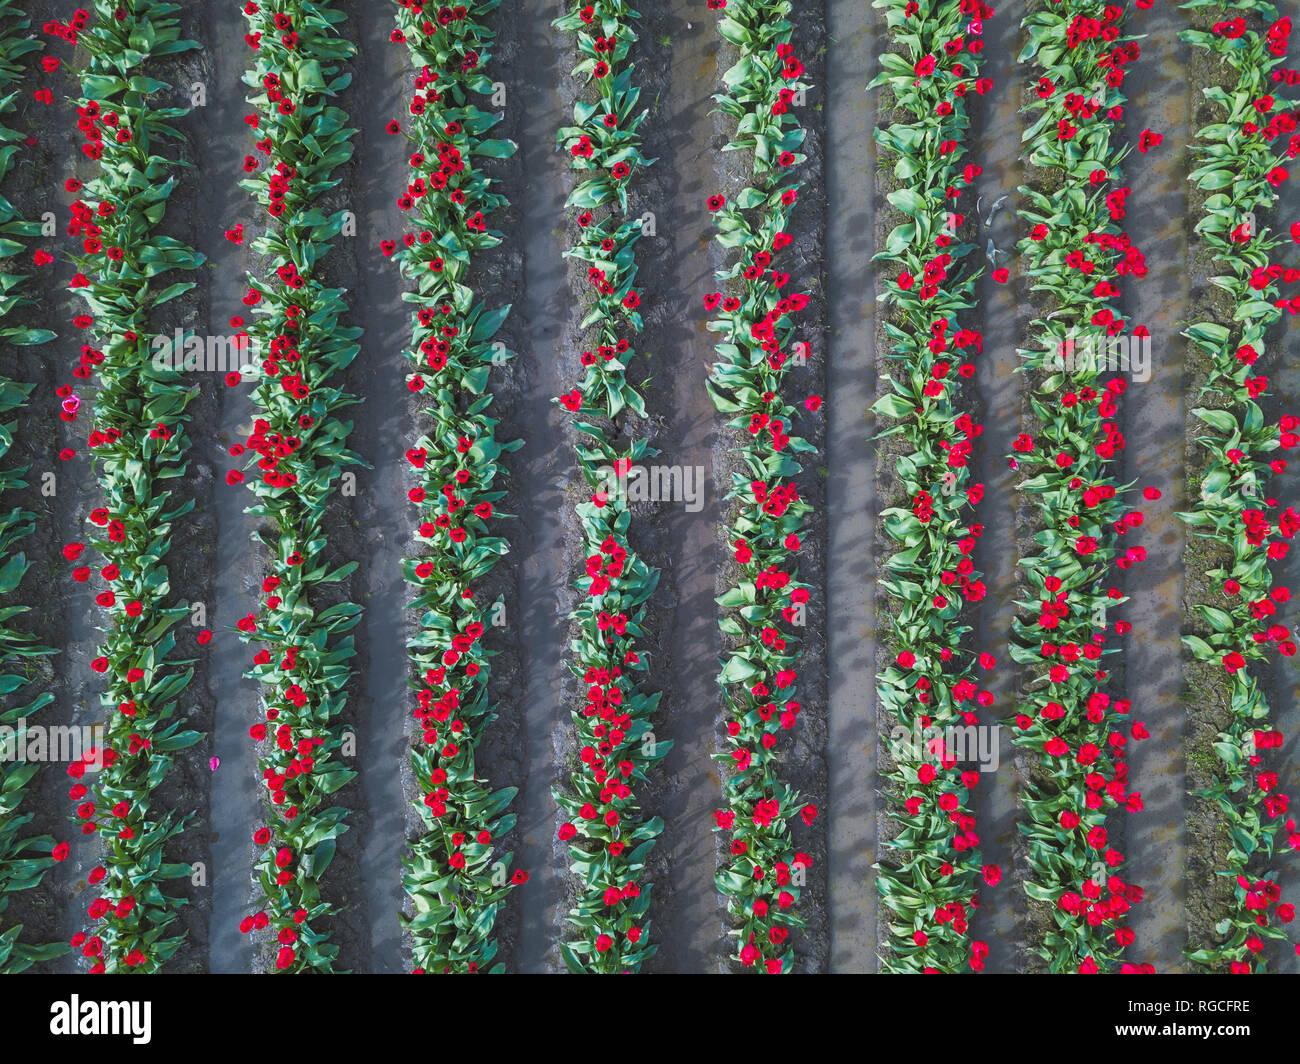 USA, Washington State, Skagit Valley, tulip field from above Stock Photo